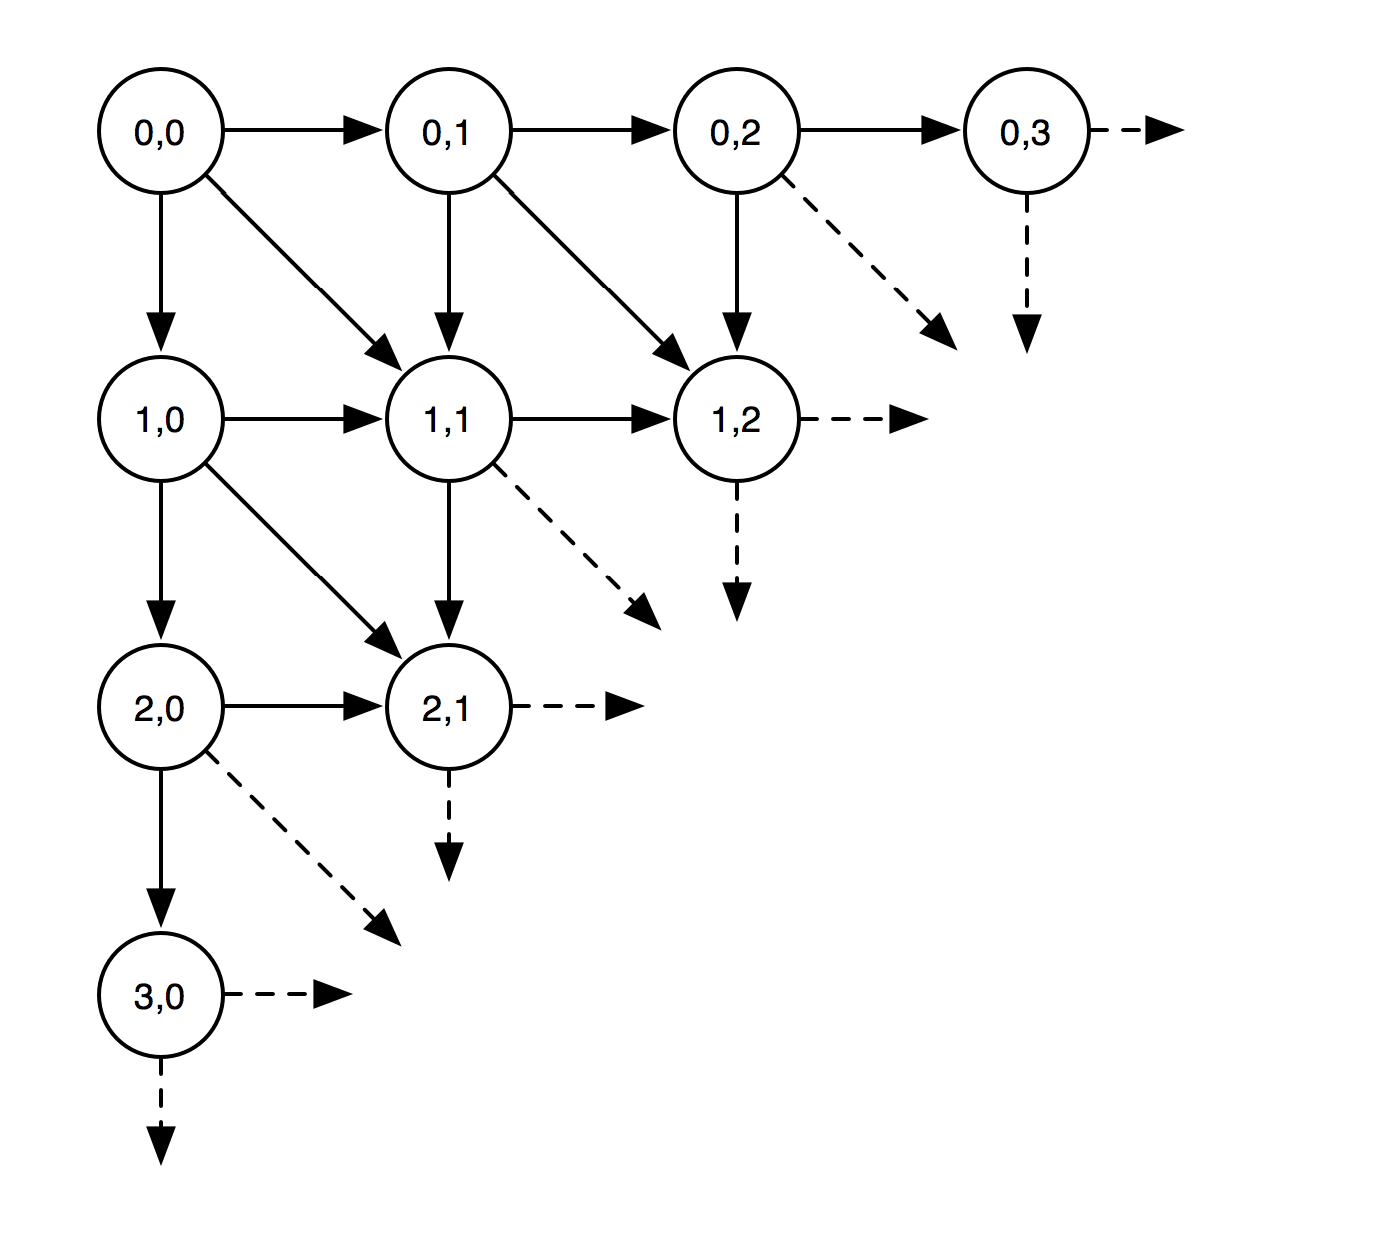 Decision tree diagram rotated to be a grid